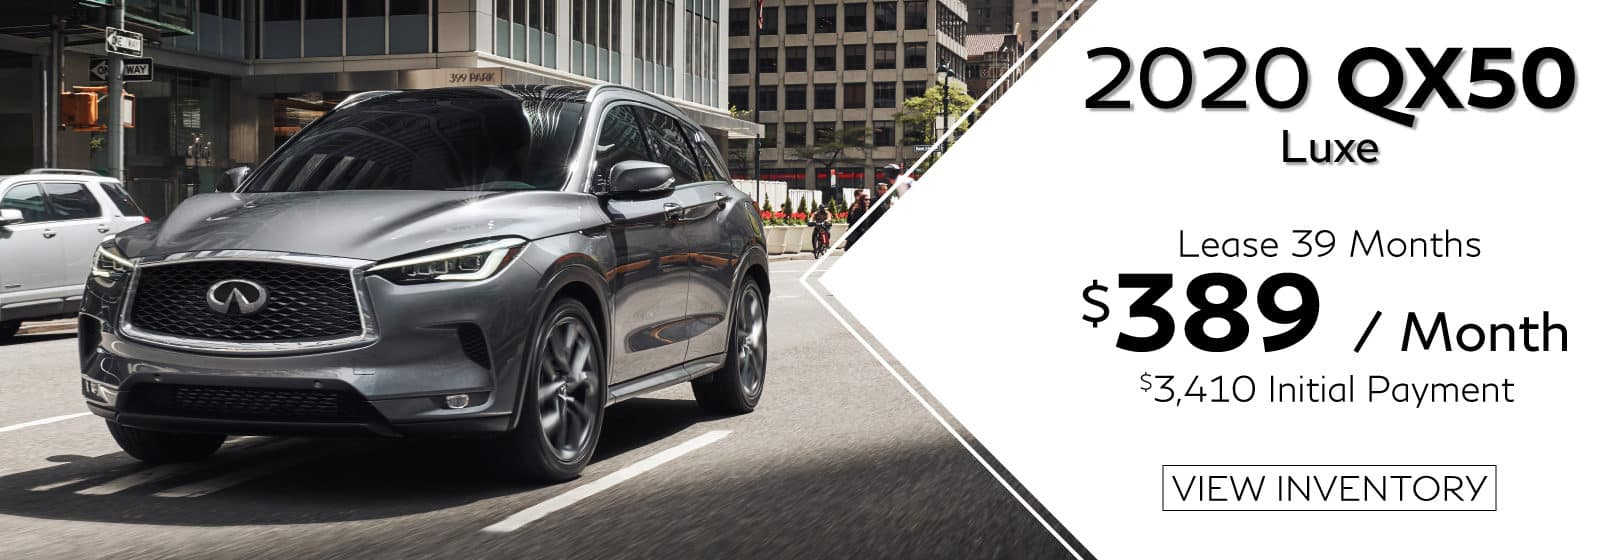 2020 QX50 LUXE. $389 a Month for 39 months. $3,410 initial payment. Gray QX50 driving in city. View Inventory button.